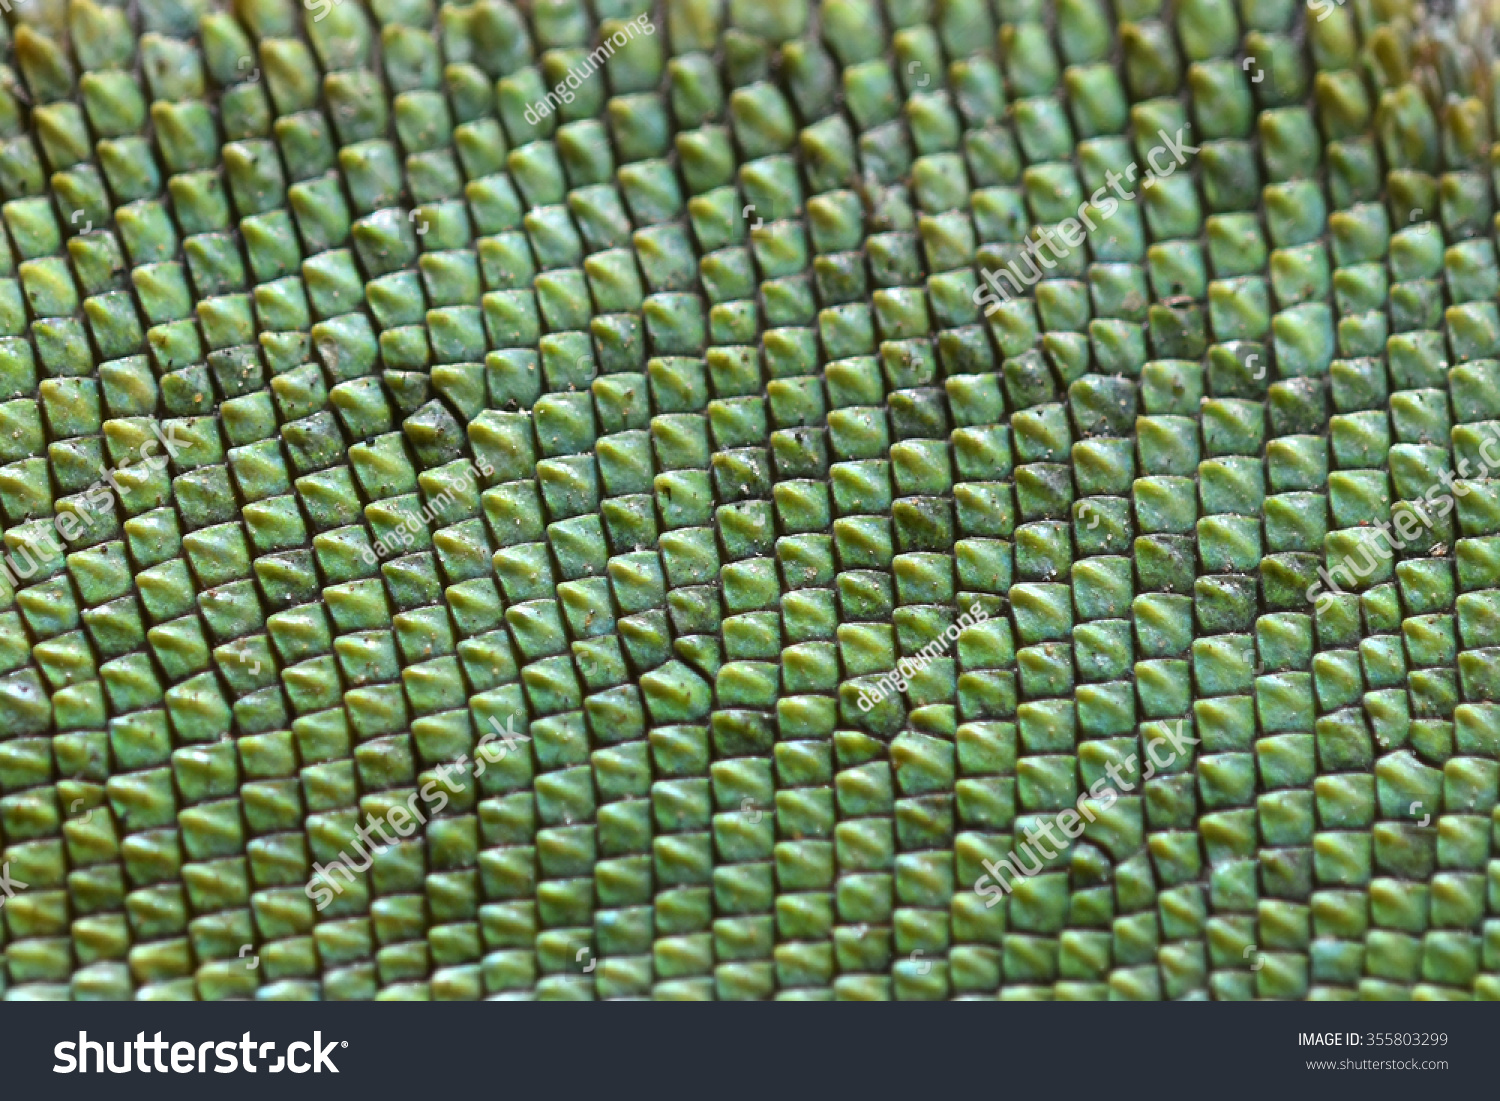 Chameleon Lizard Skin Pattern Textured Green Stock Photo